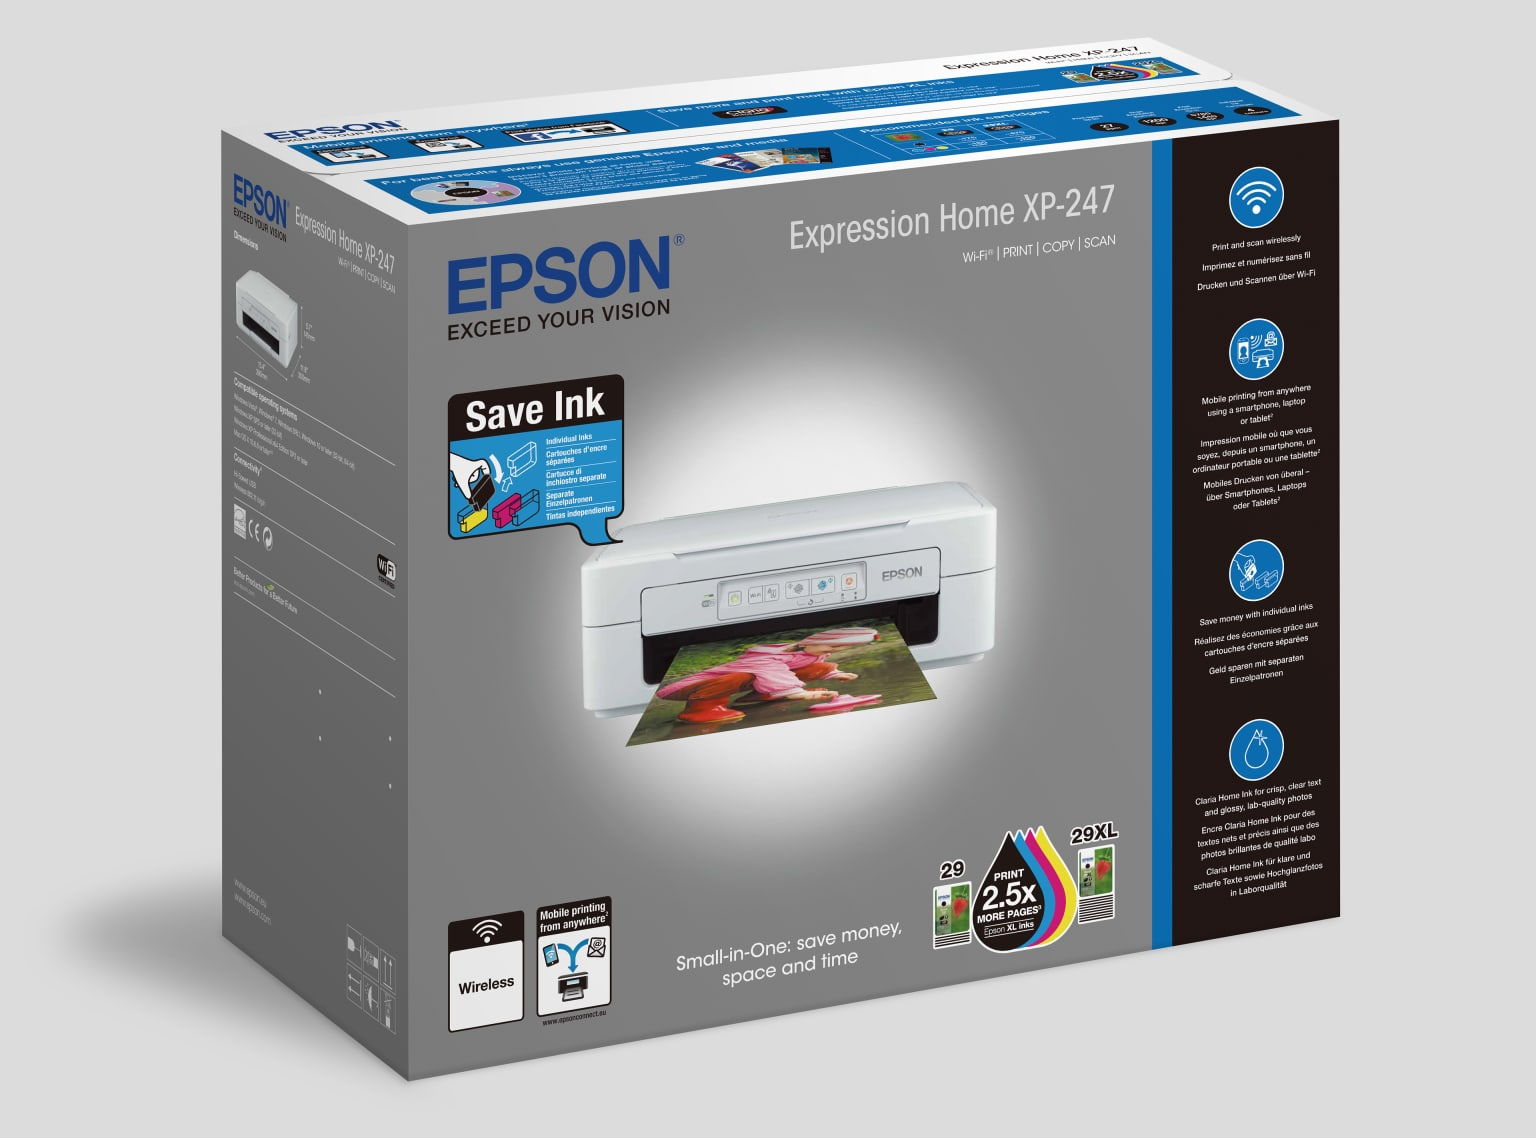 Epson XP-247 packaging